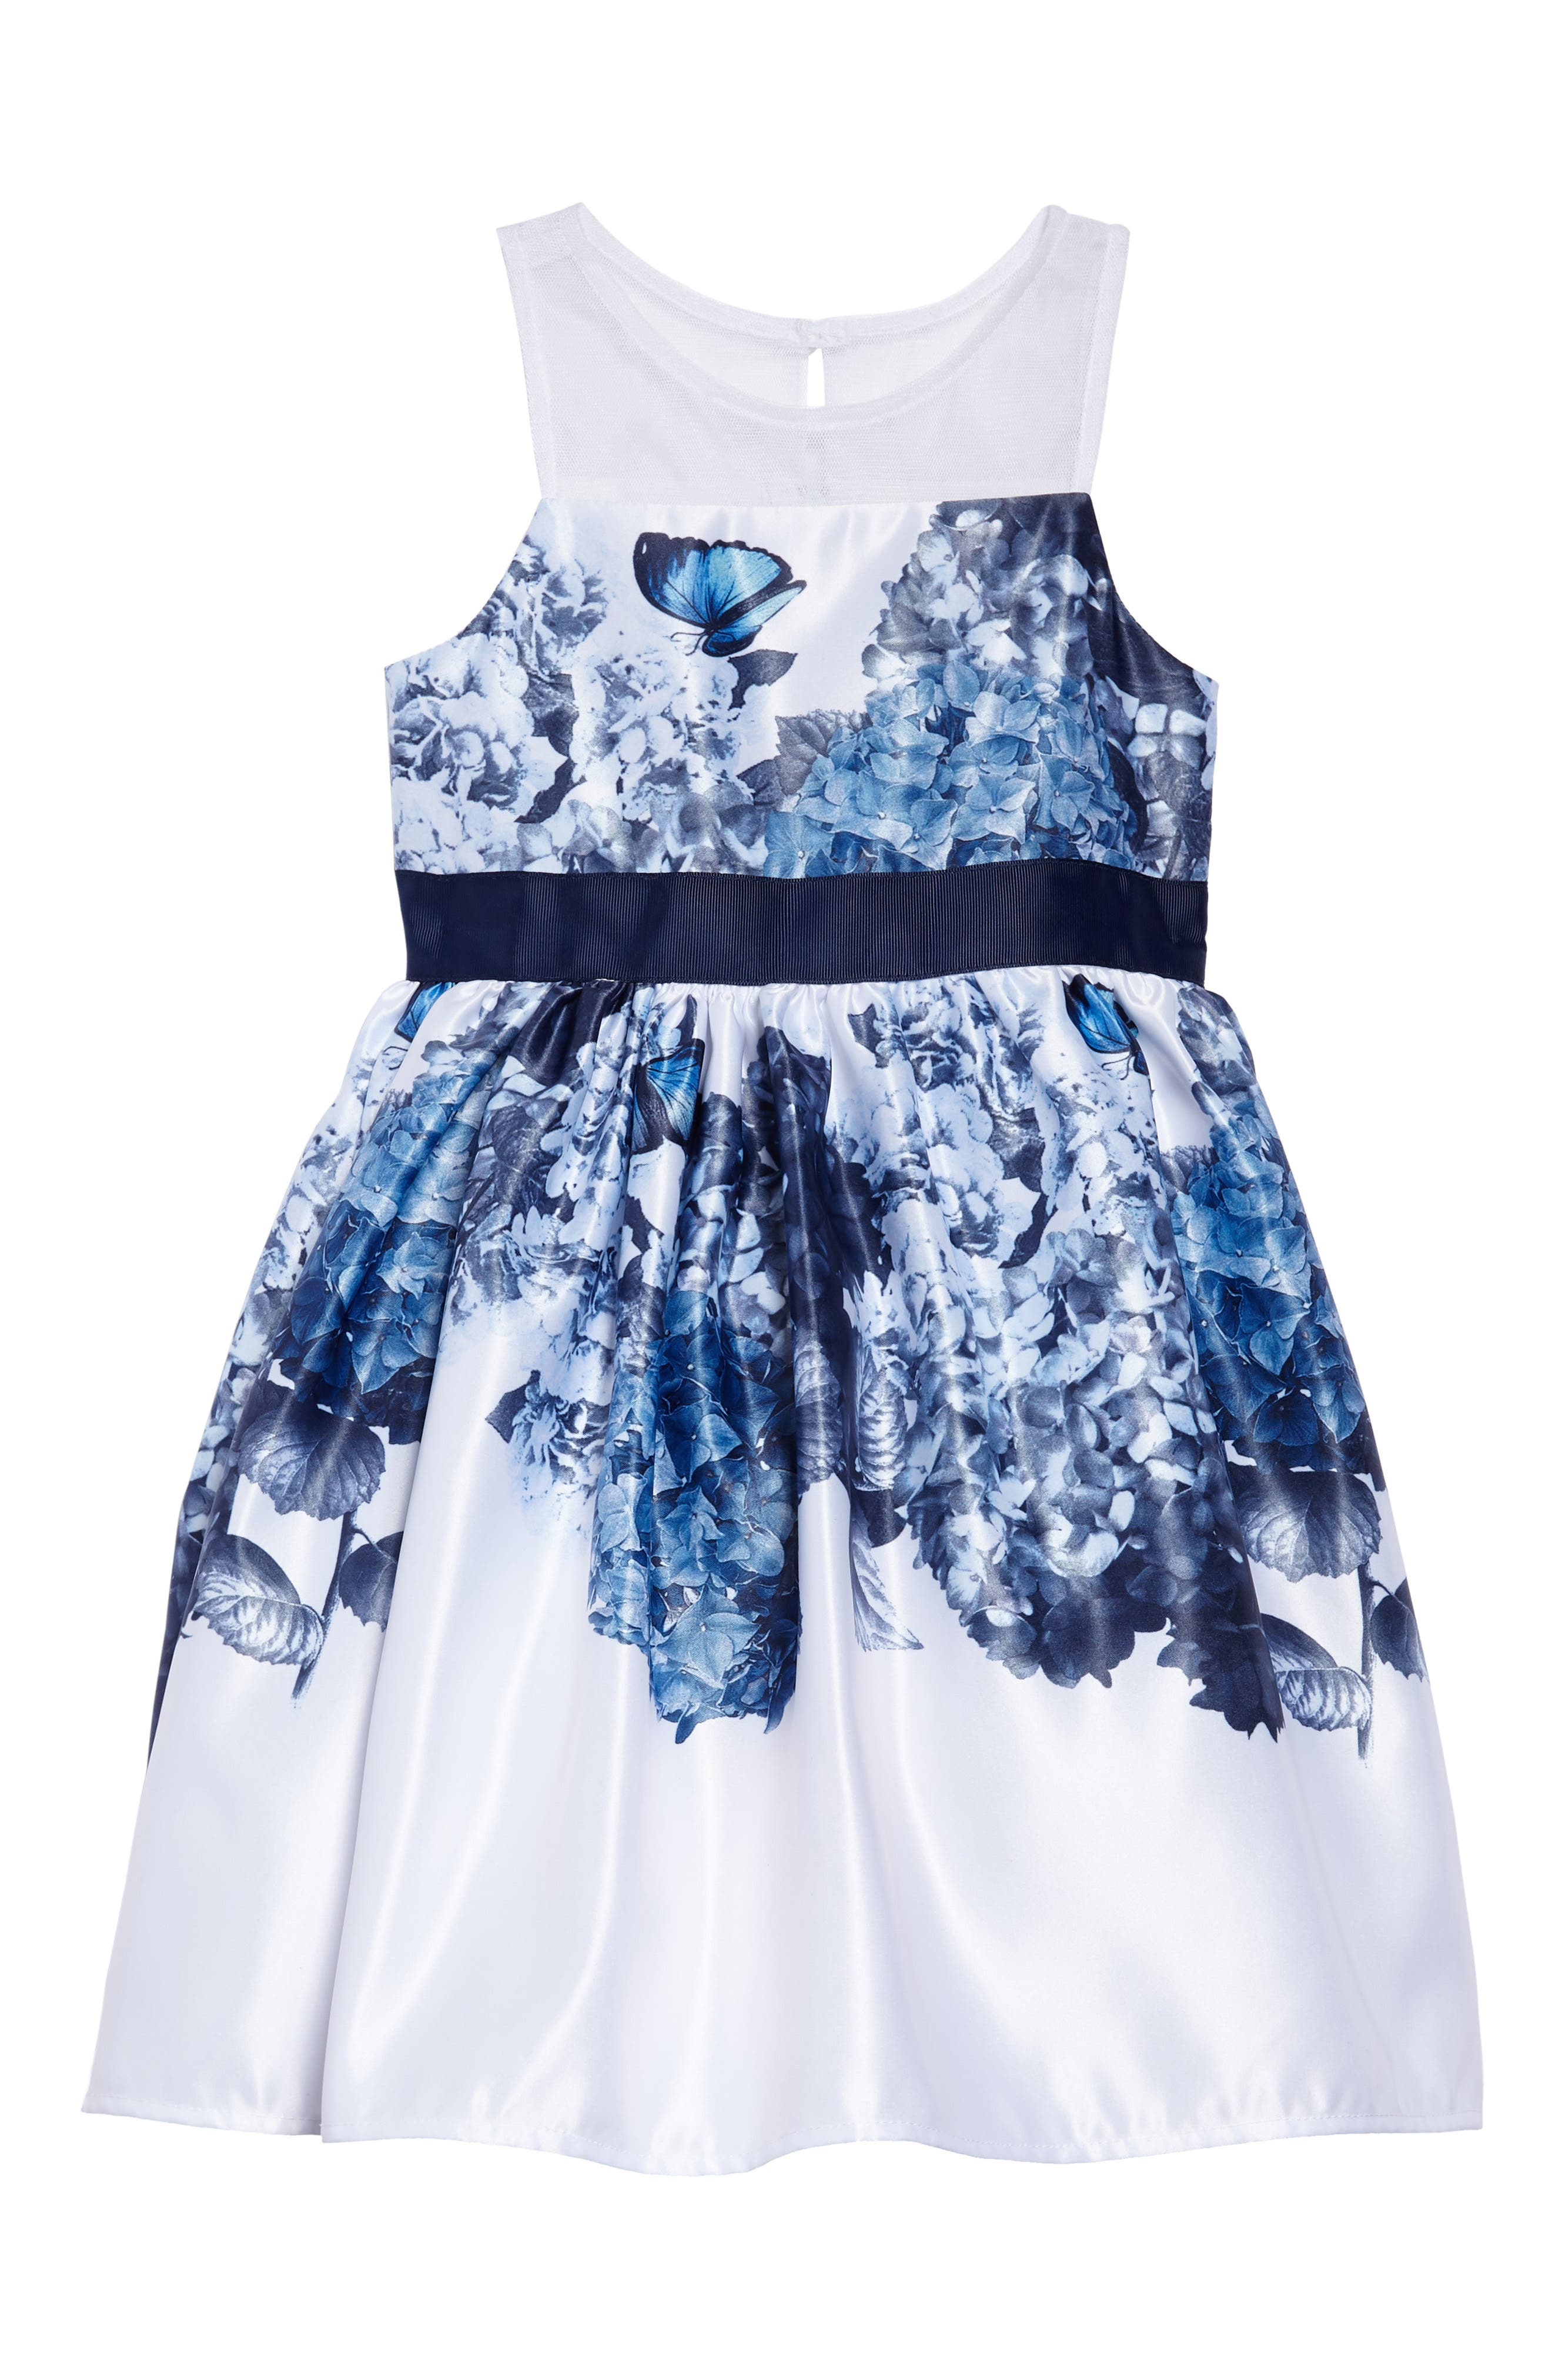 Ava & Yelly Floral Fit & Flare Satin Party Dress (Toddler Girls & Little Girls)